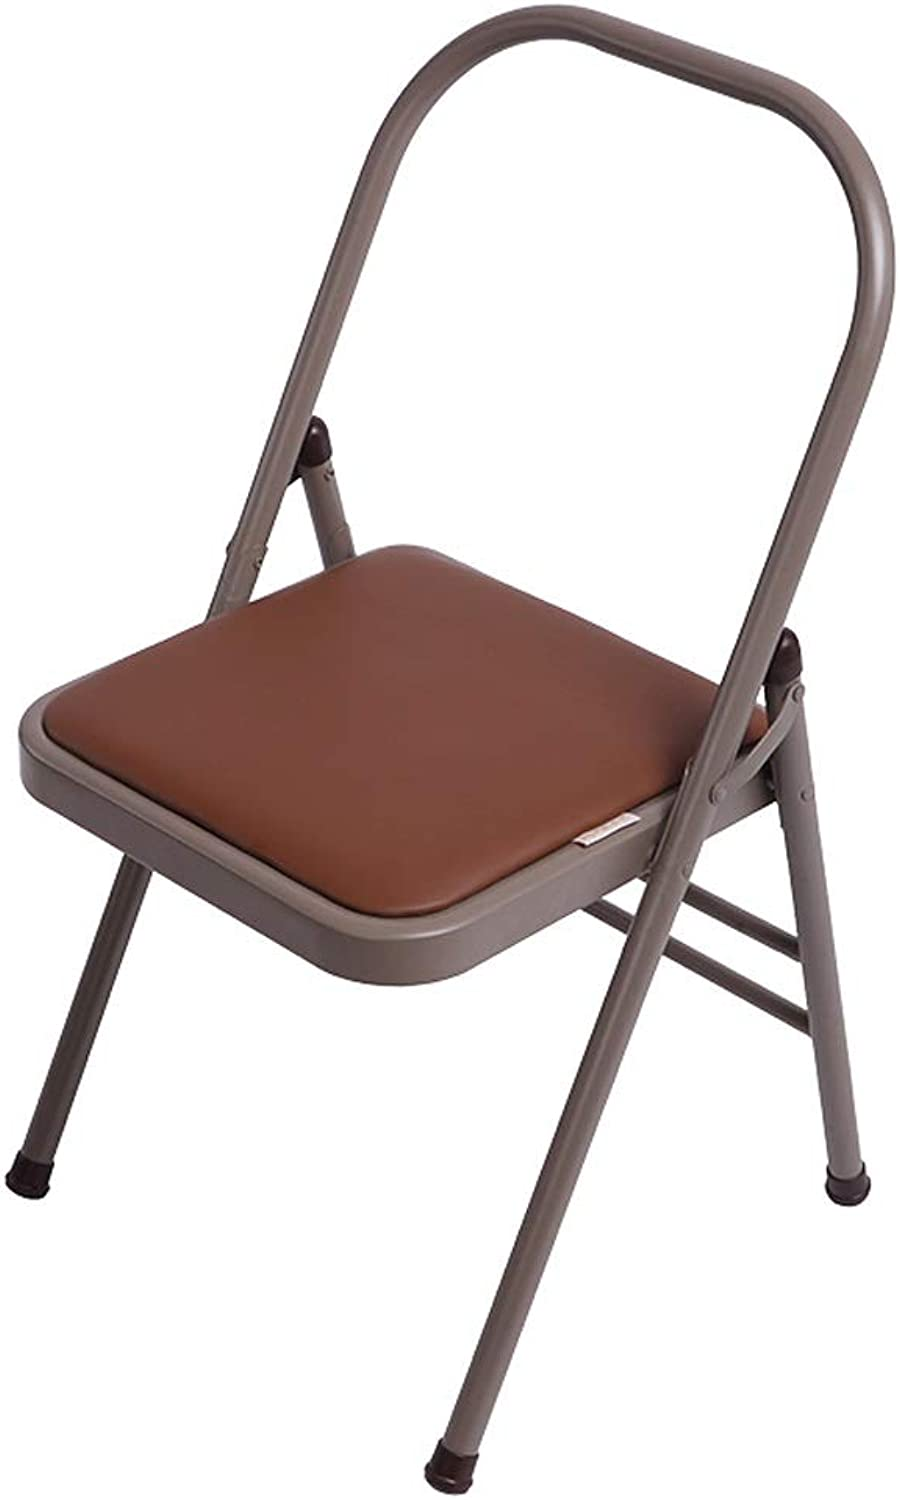 22mm Steel Pipe Yoga Chair Auxiliary Tool, Faux Leather Brown Folding Yoga Chair, Foldable Yoga Backless Standard Prop Practice Asana Activity (Size   A)